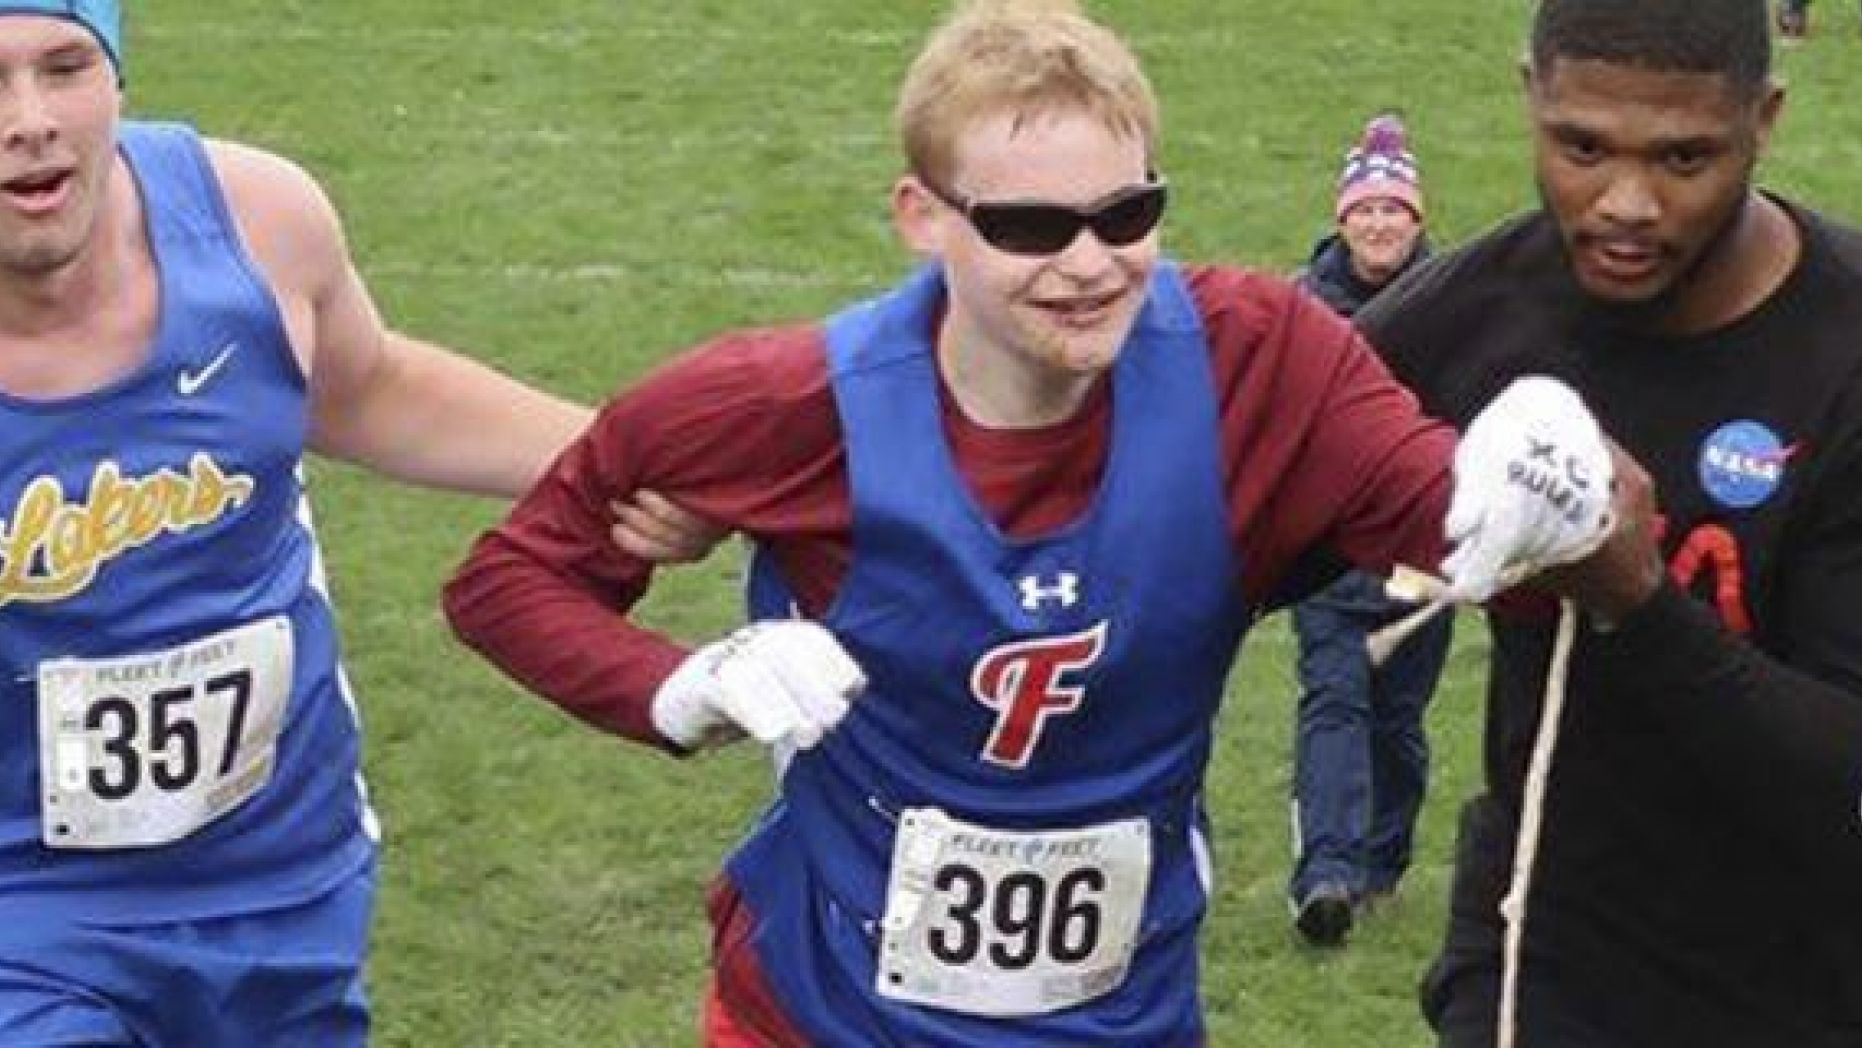 Cazenovia High School sophomore Jake Tobin, left, helps Fairport High School senior Luke Fortner, center, during a cross country race in Auburn, N.Y. Fortner, who is legally blind, fell towards the end of the race but was assisted by Tobin, and Jerry Thompson, right, his running aide.